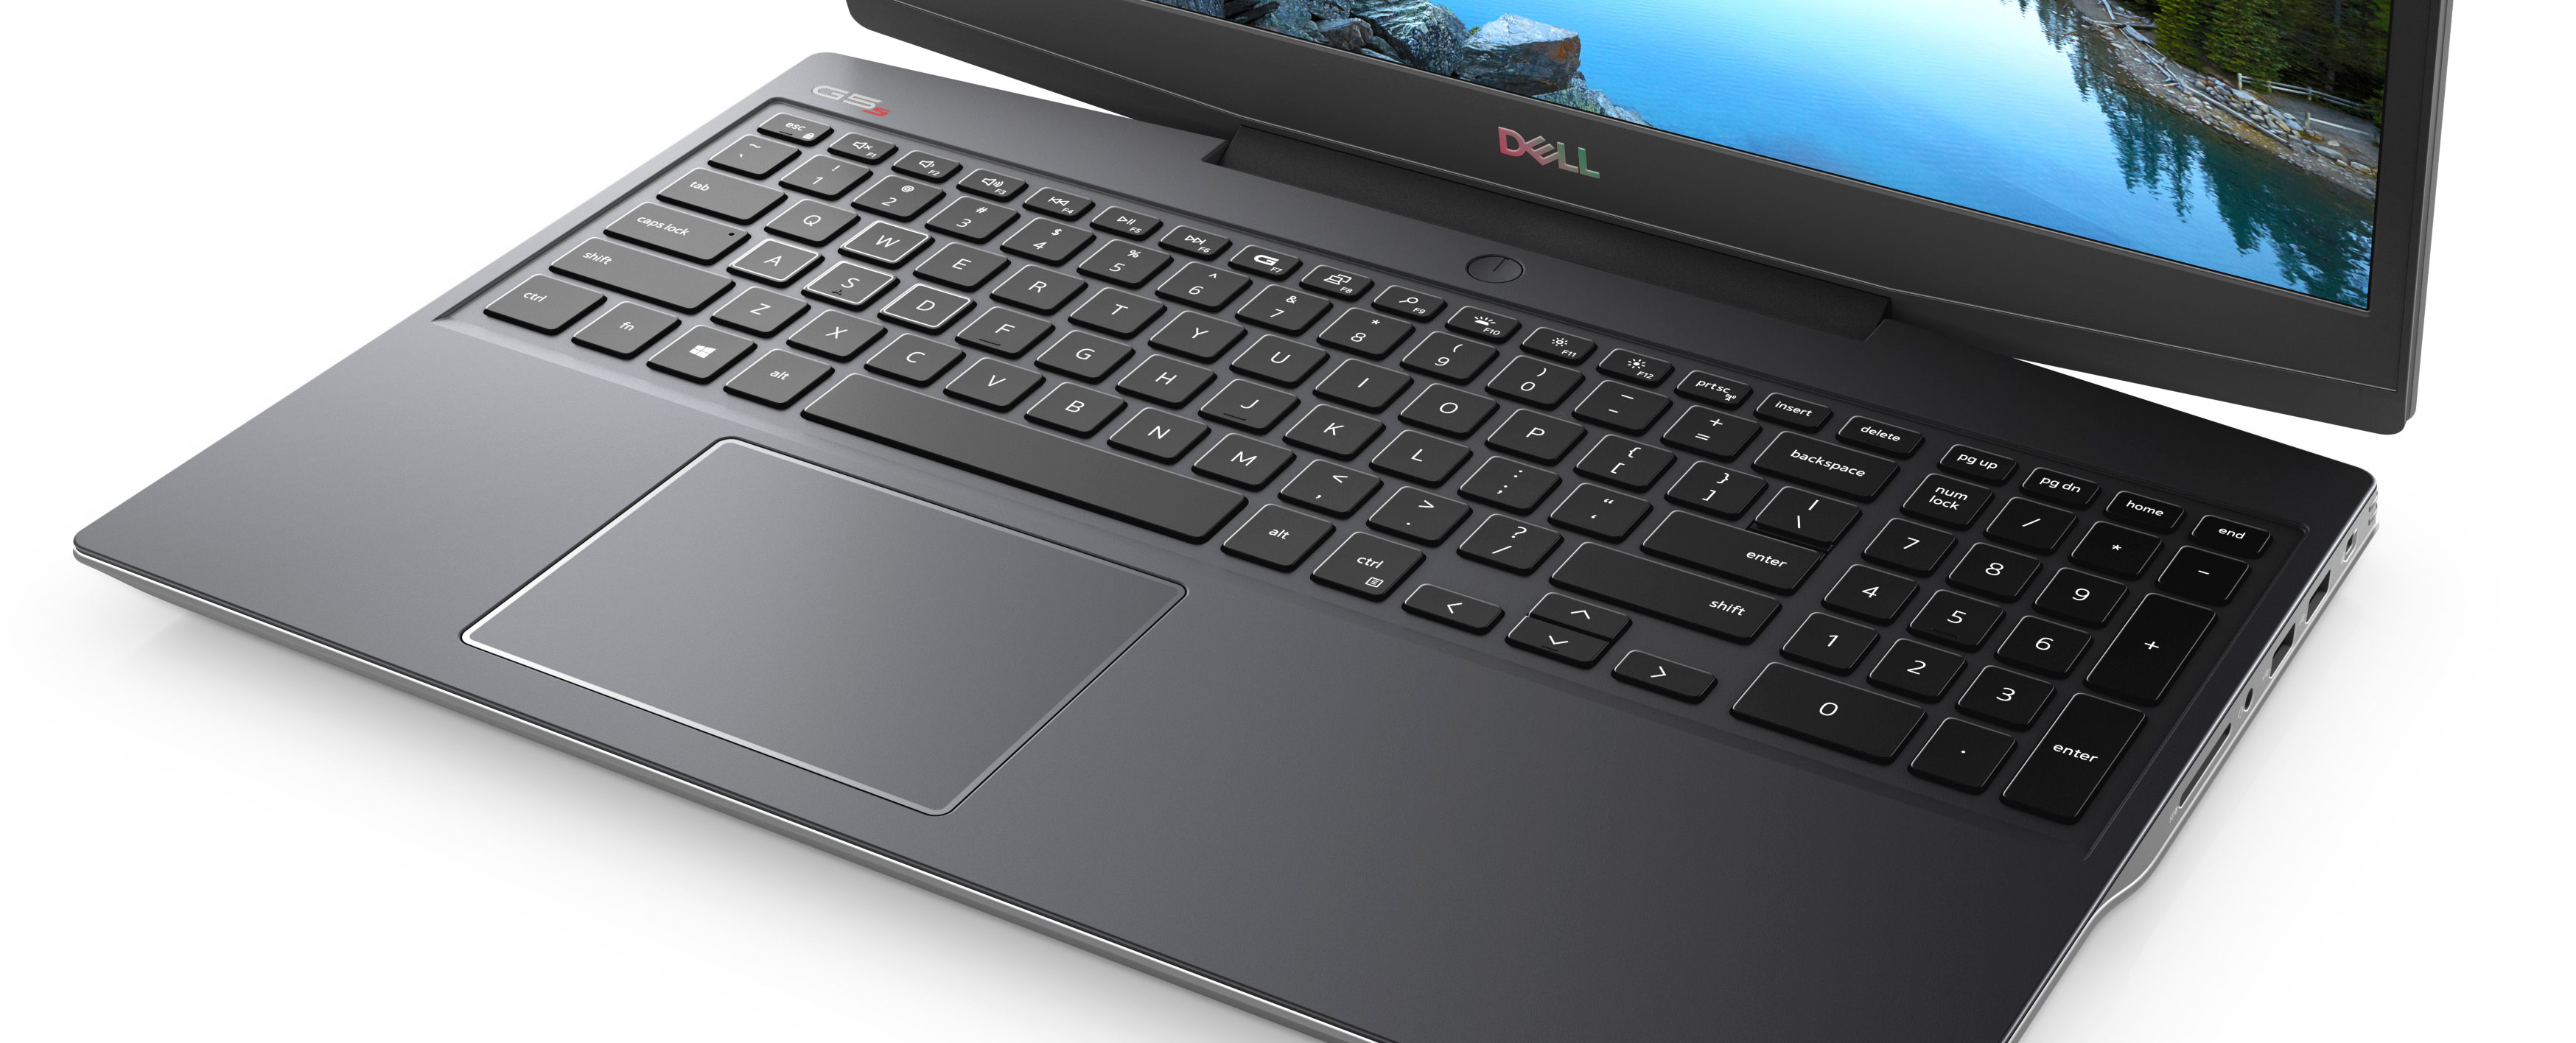 2020 Dell G5 15 SE with RGB keyboard and AMD hardware